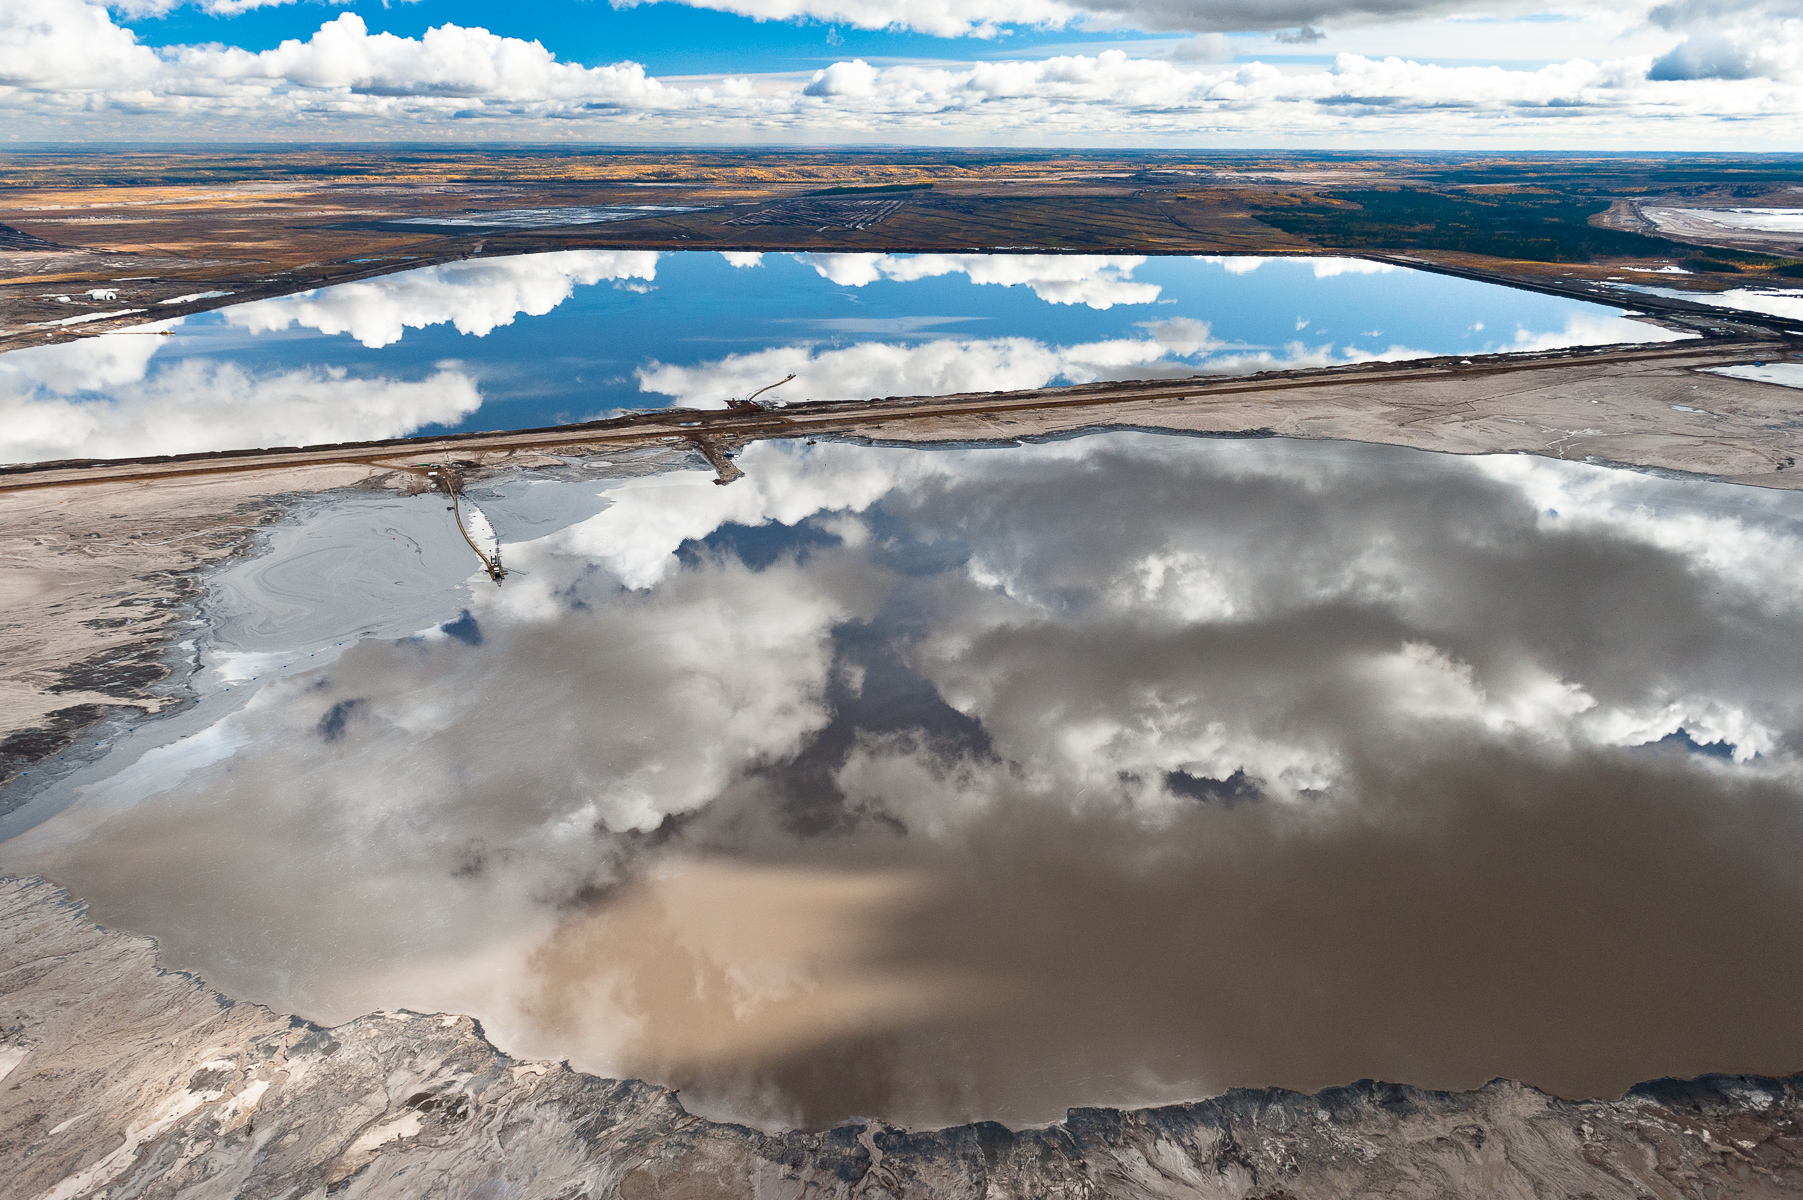 """Reflected Sky in Tailings Pond.                                Northern Alberta. Canada. 2010. Disguised by the beauty of a reflection, these toxic tailings ponds are a considerable health risk. These vast toxic lakes are completely unlined and nearly a dozen of them lie on either side of the Athabasca River. Individual ponds can range in size up to 8,850 acres.   Limited Edition Fine Art PrintsAll prices in U.S. dollars.Prices are for prints only and do not include tax or shipping.16""""x24""""  edition of 25  /  $100020""""x30""""edition of 15  /  $150030""""x45""""edition of 10  /  $350040""""x60"""" /        edition of 6   /   $6000"""